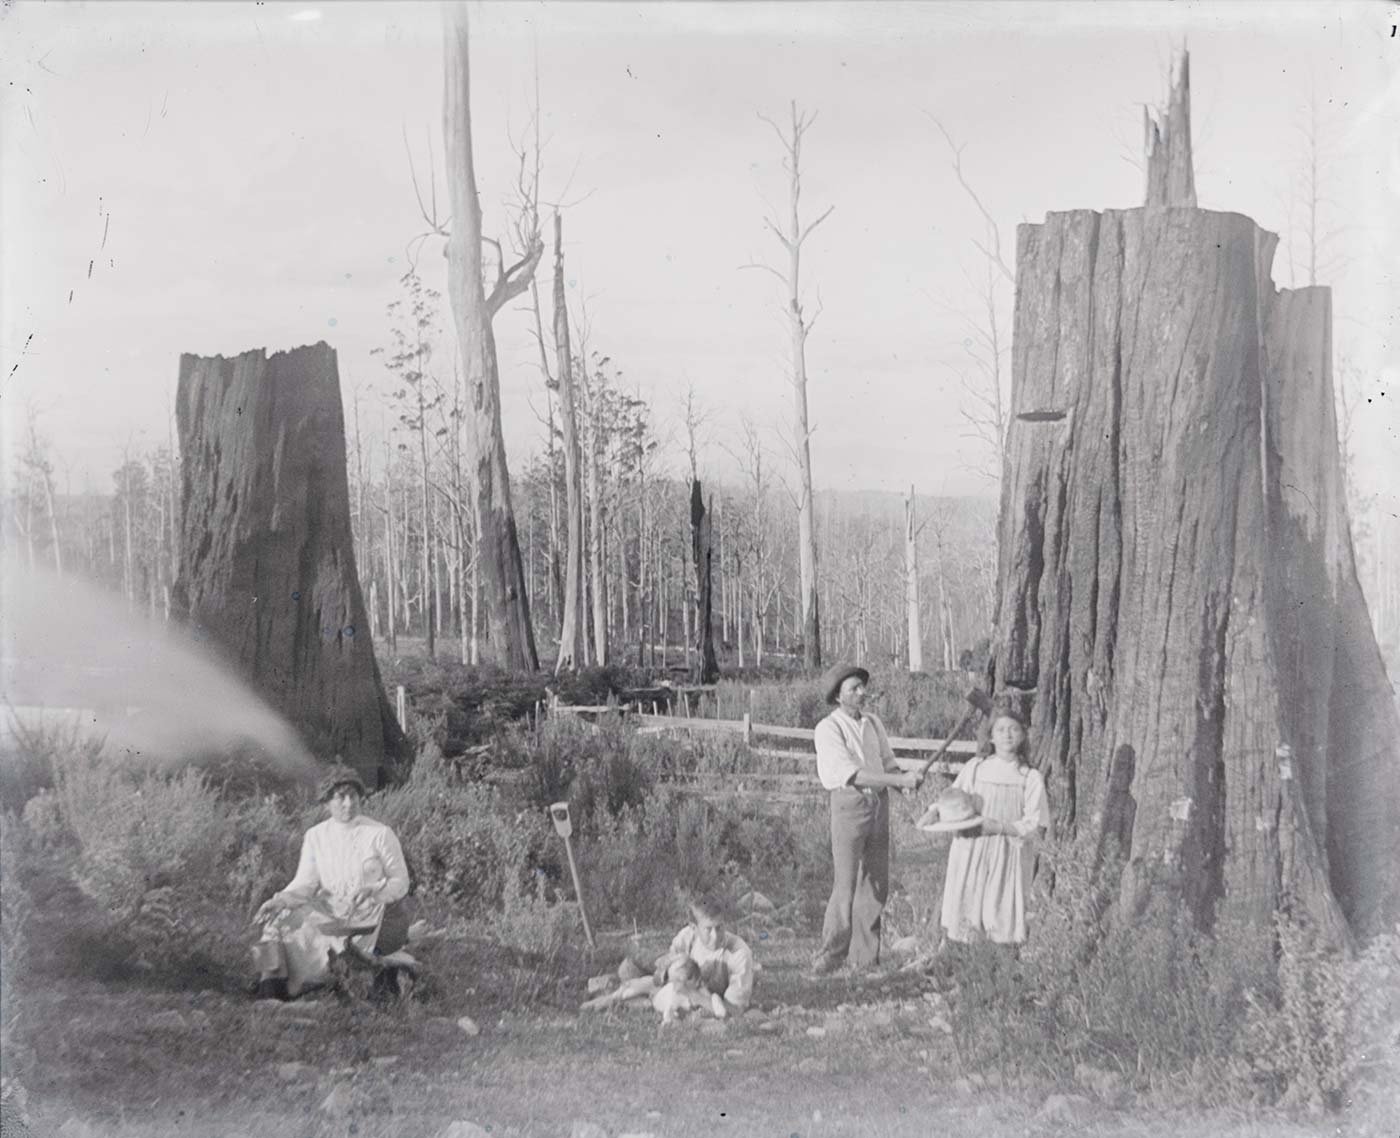 A photographic glass plate negative showing a family posing outside in between two large tree stumps. The family consists of a woman sitting to the left of the photograph, a young boy lying down in the centre with a dog, a man posing with an axe, and a young girl holding a wide brimmed hat. There are marks on the top side of the glass plate. - click to view larger image